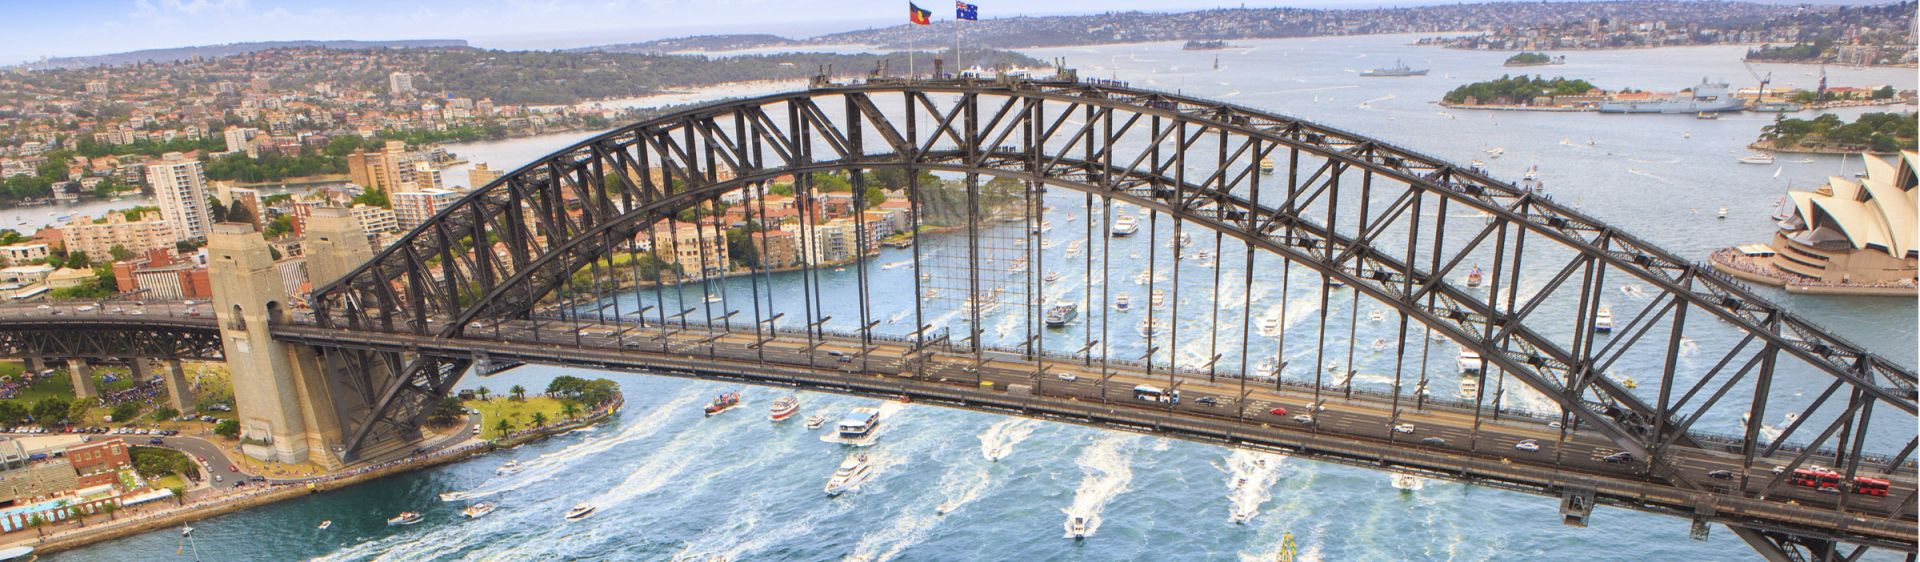 213c8e4ac94d Australia Day Sydney - Public Holiday Events, Attractions & Celebrations